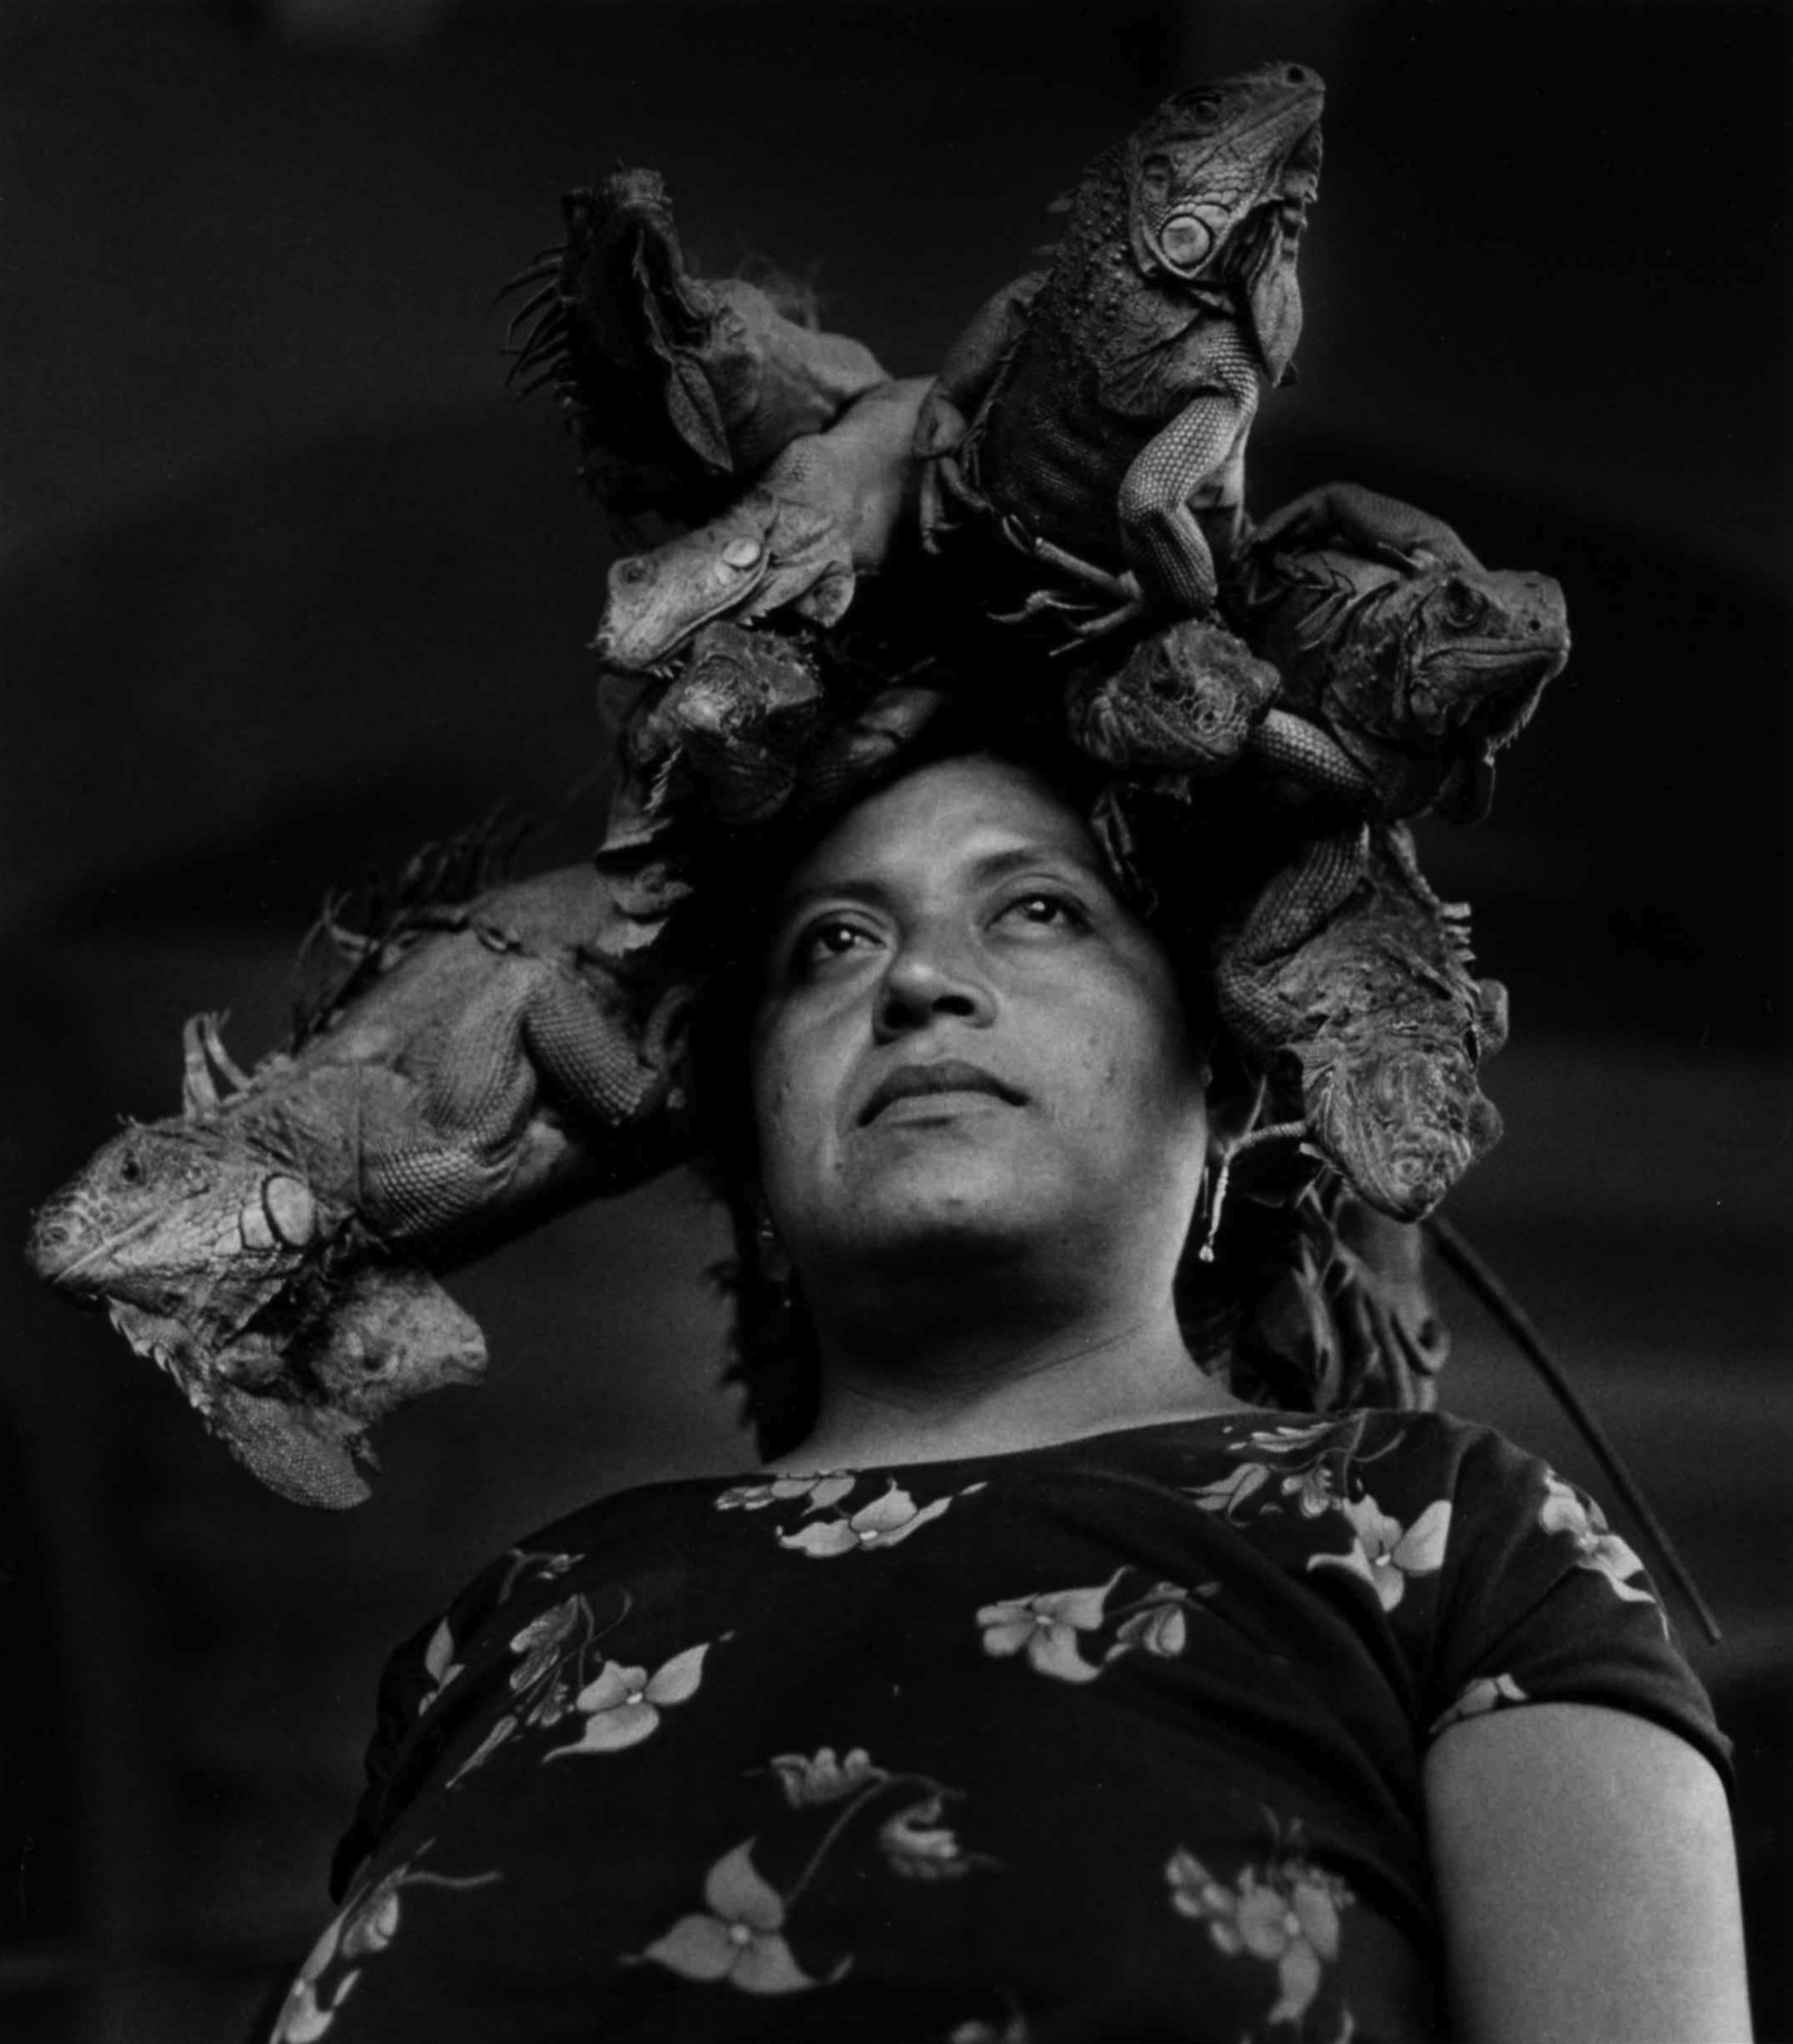 """Our Lady of the Iguanas, Juchitán, Mexico,"" 1979, is one of Graciela Iturbide's most iconic images."